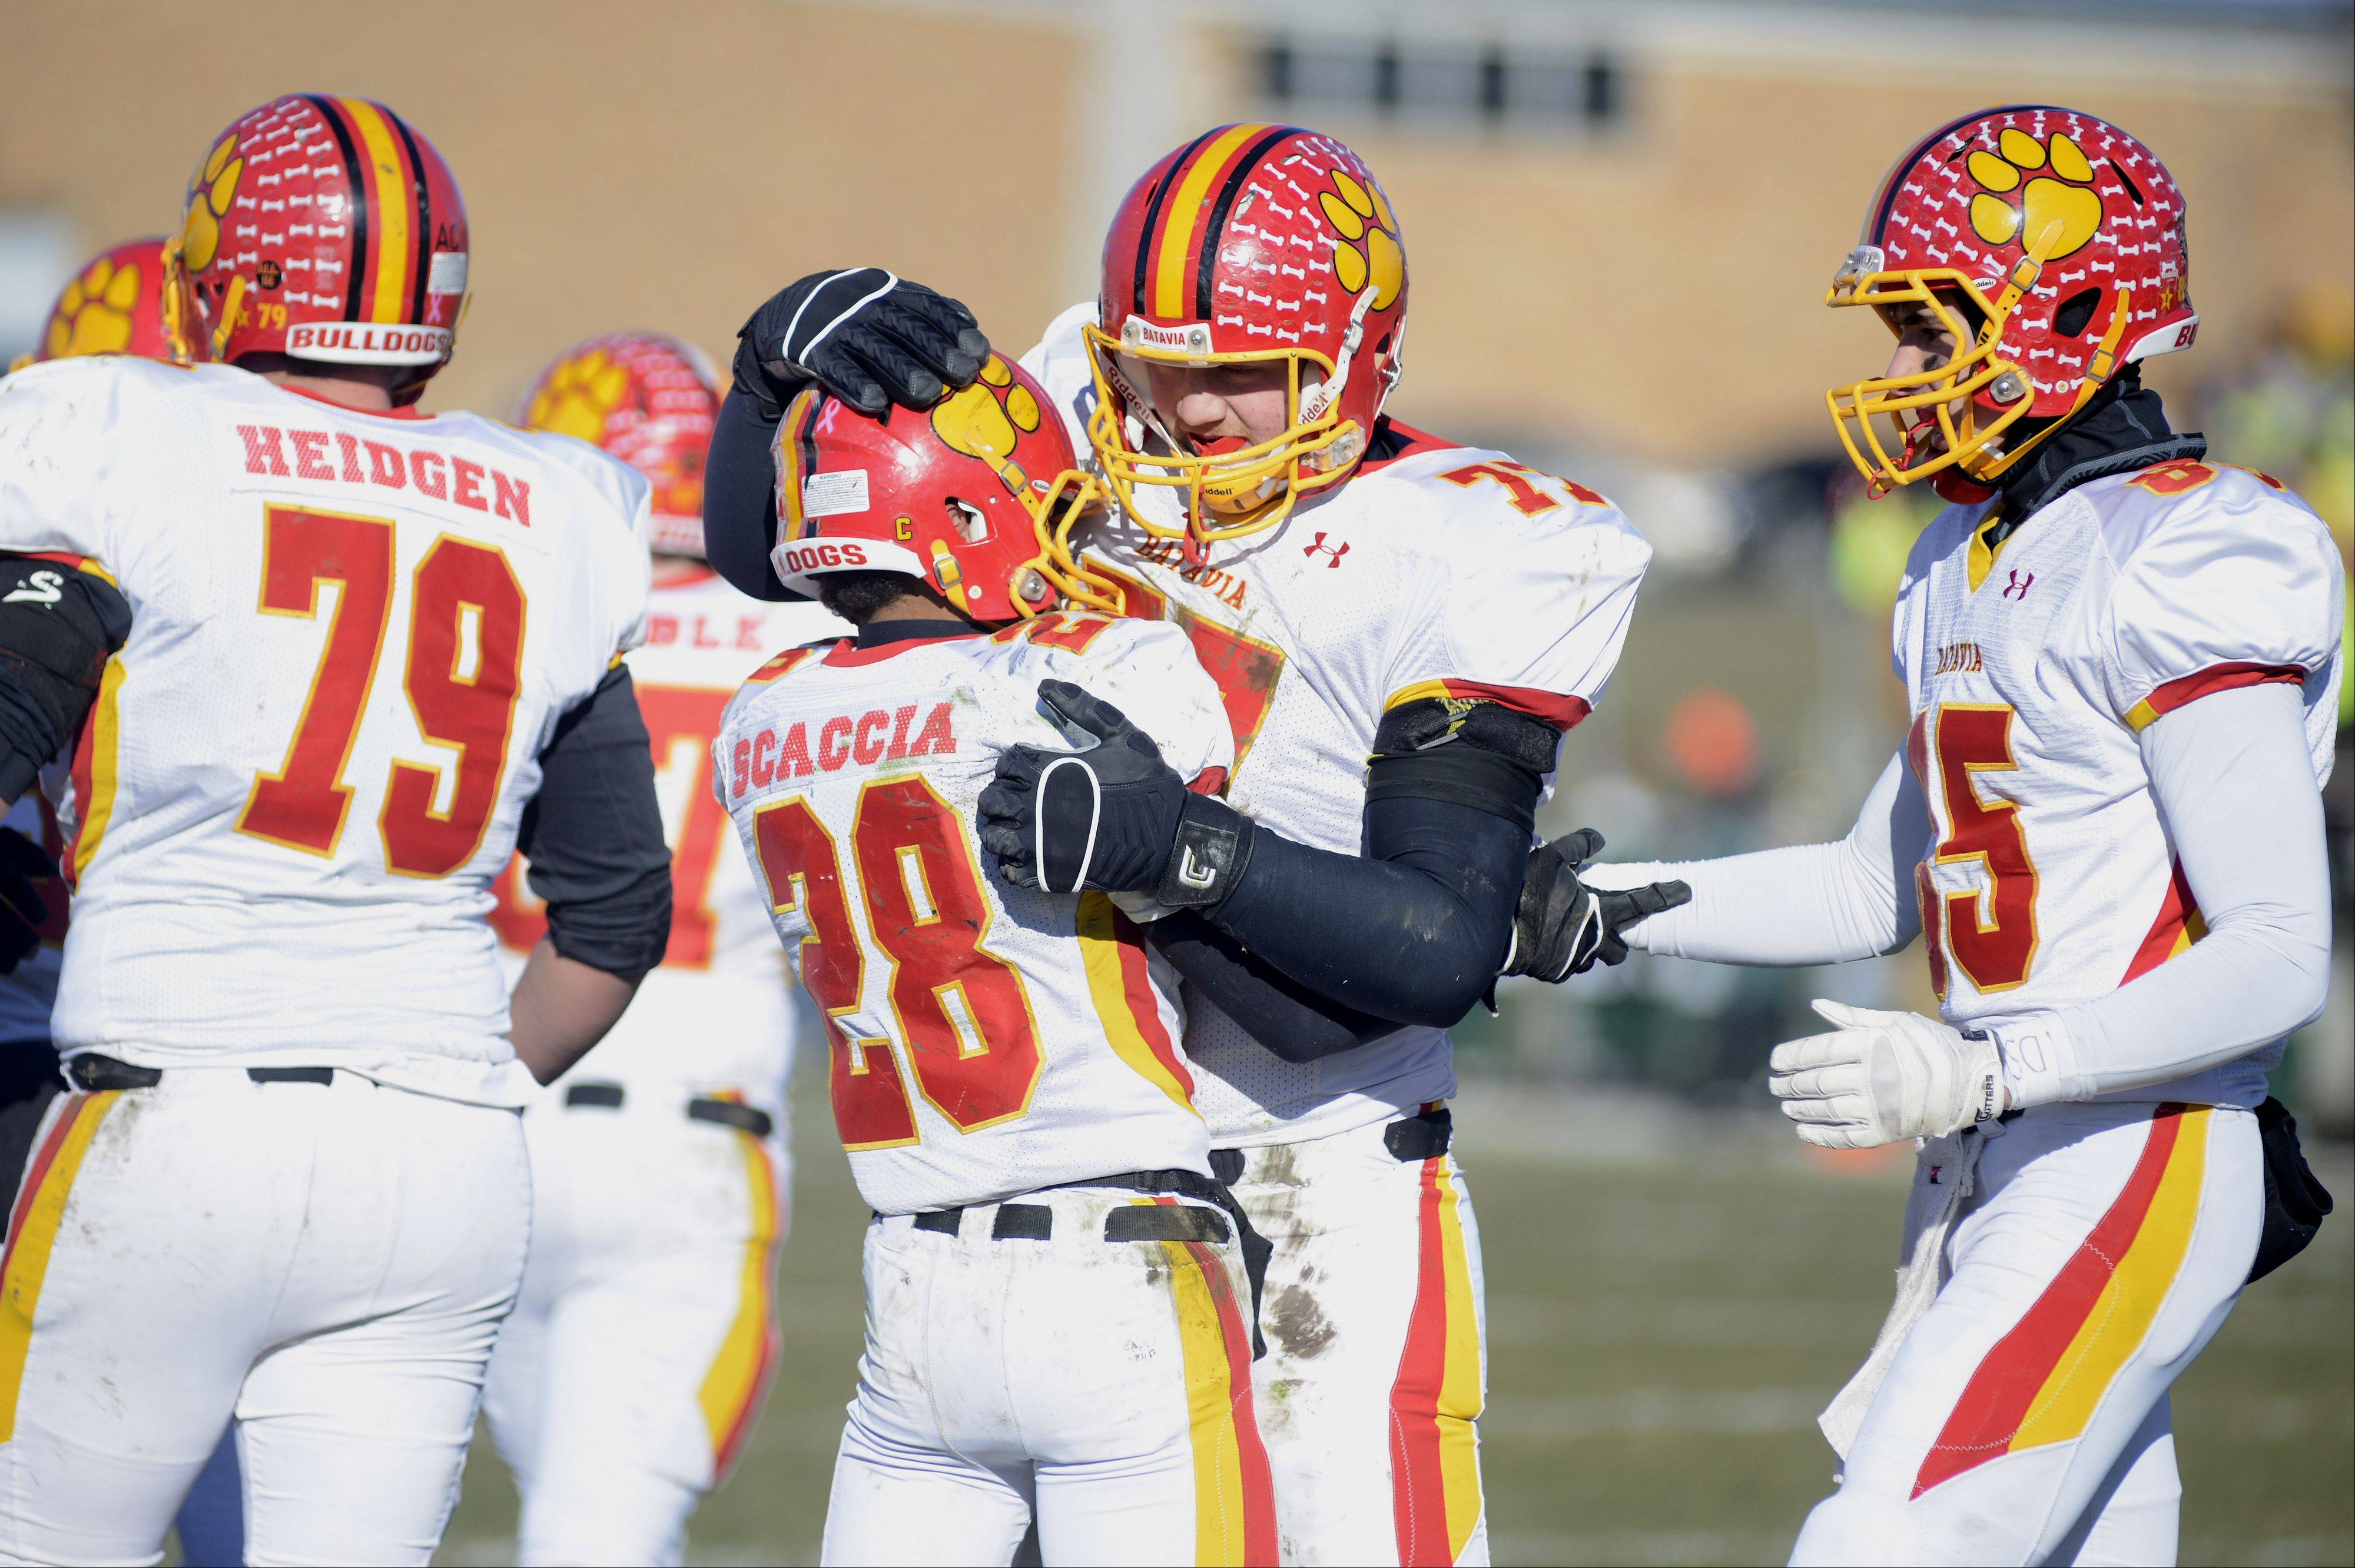 Batavia�s Anthony Scaccia is congratulated by teammates Jack Breshears (77) and Jordan Zwart after scoring a touchdown in the second quarter of the Class 6A semifinal game on Saturday, November 23.